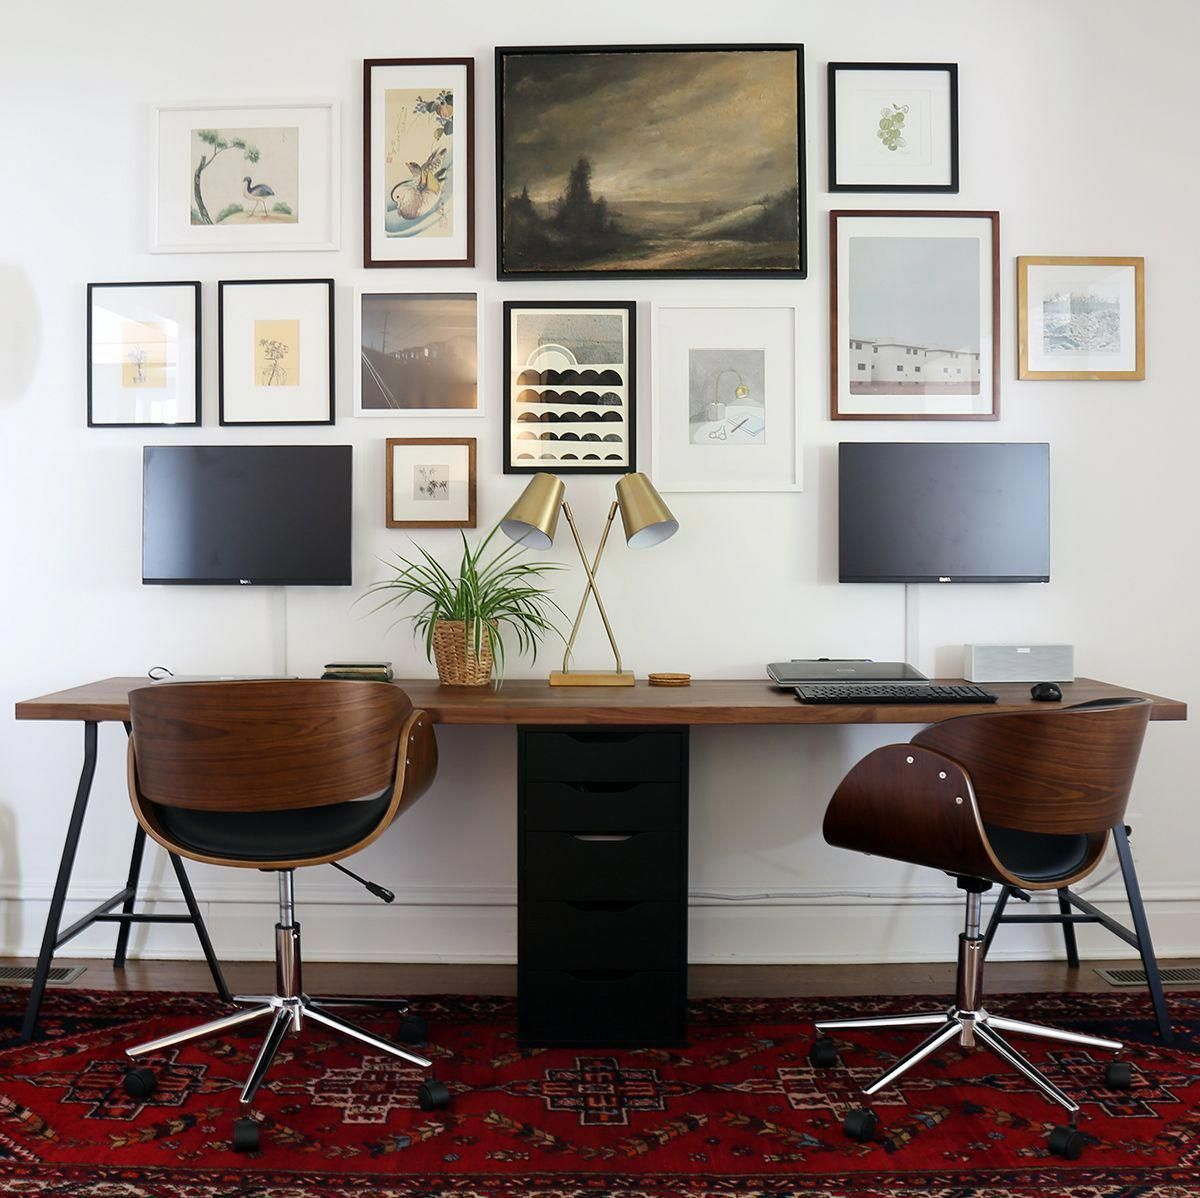 Ikea Officedesk Ideas: 12 Office Desk Redo Ideas For You To Renovate Your Work